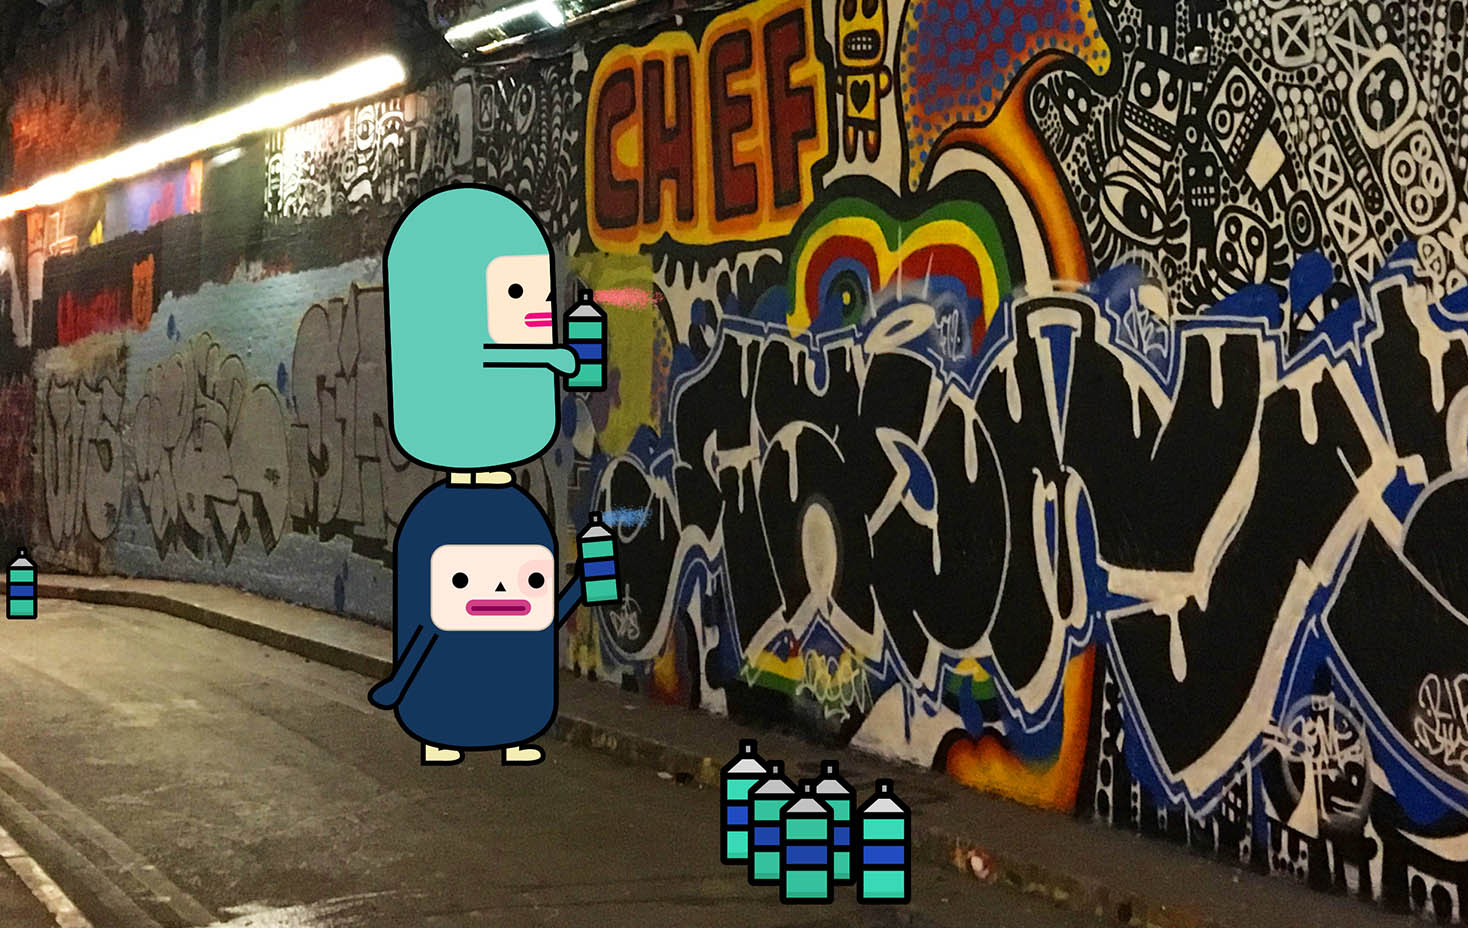 Capsubeans Instagram VR Image - Cartoon Character Licensing Kids - Cute Beans doing street art in Leake Street - Rikki Mobile